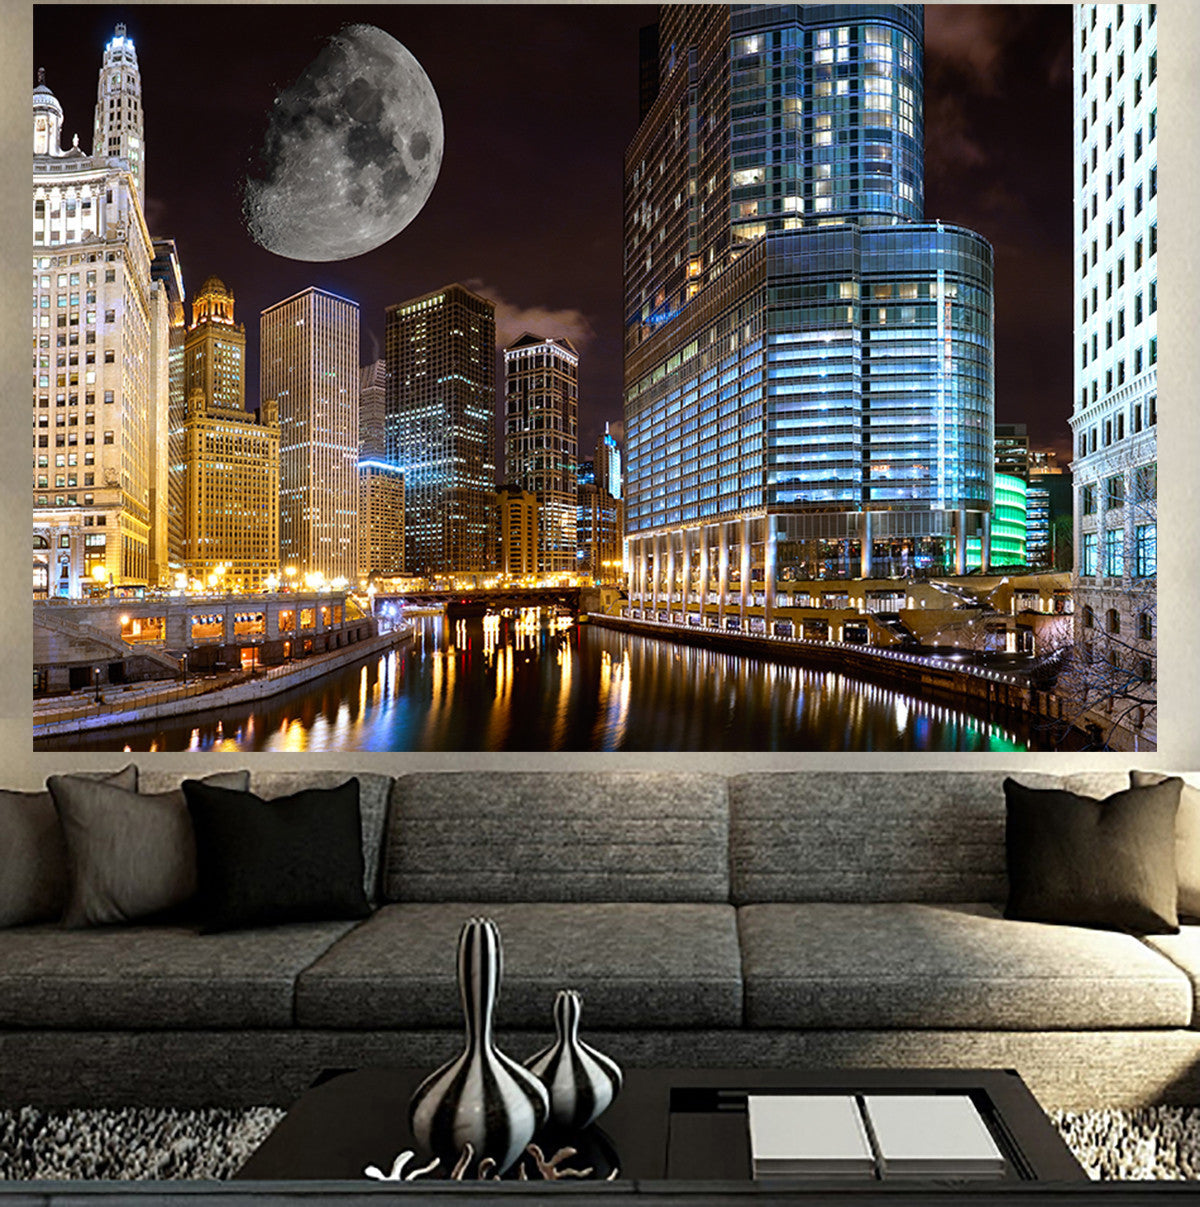 Zapwalls Decals Chicago Full Moon Riverwalk